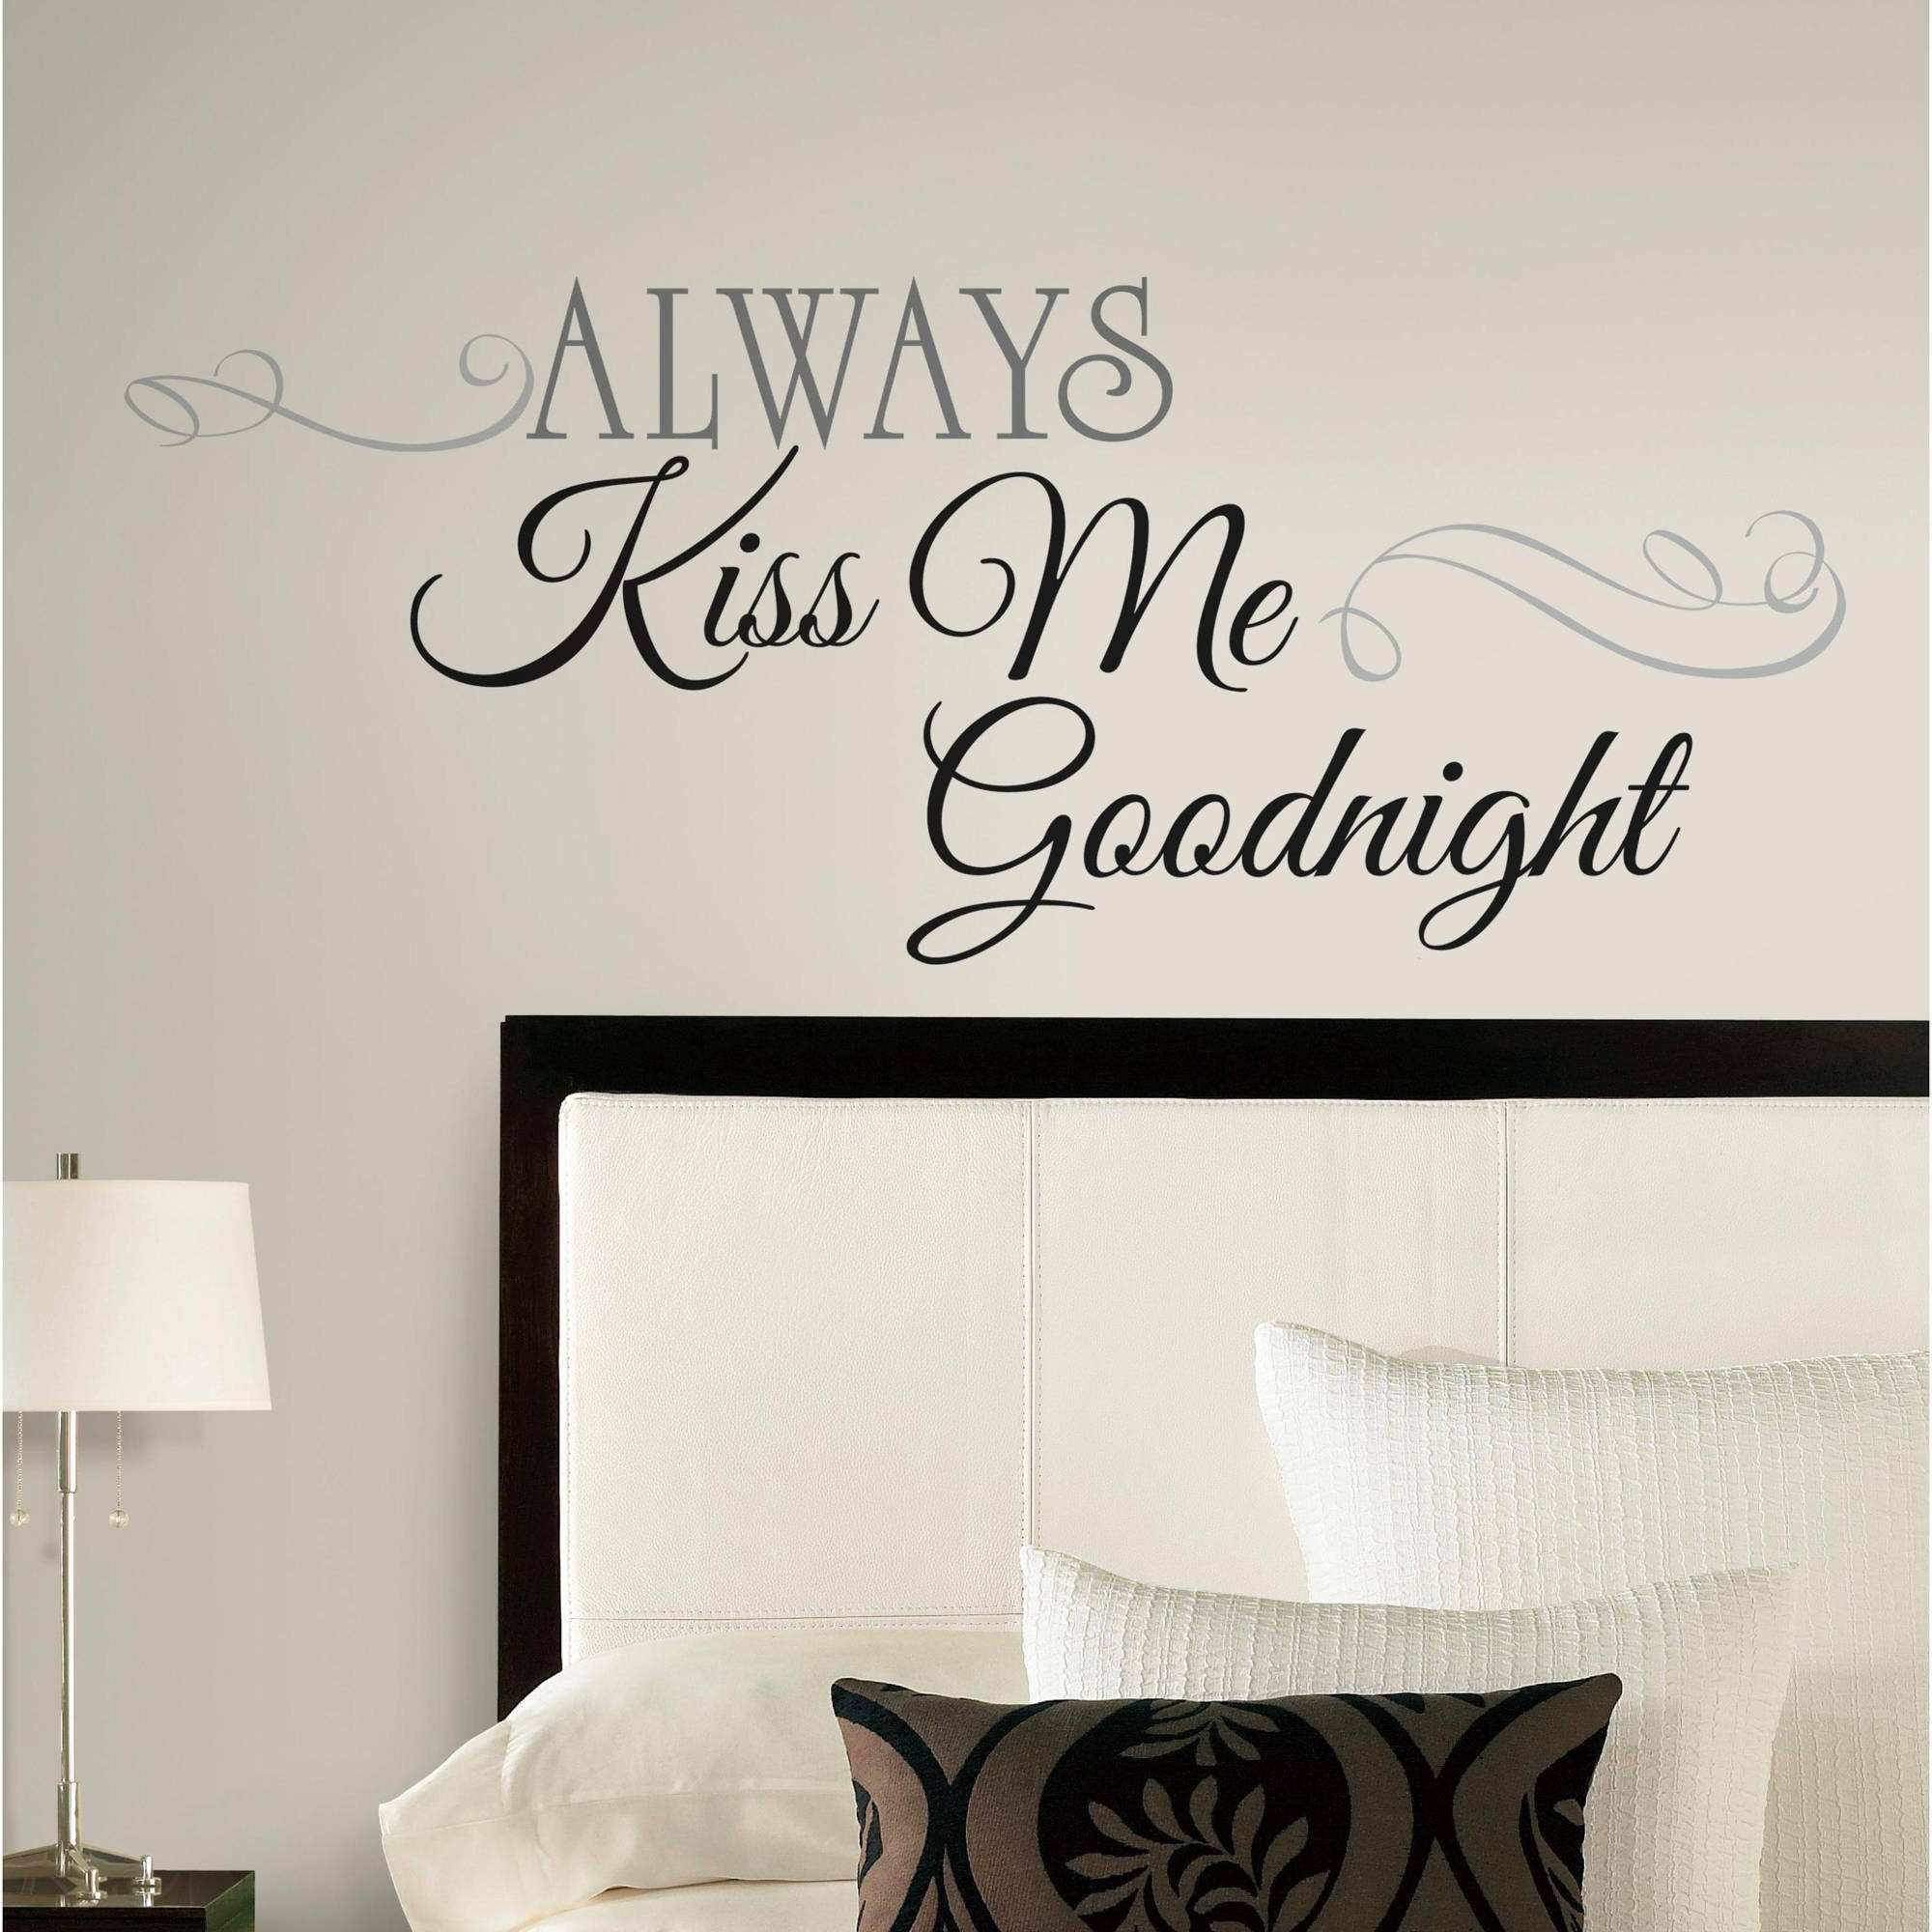 New Wall Decals In Walmart